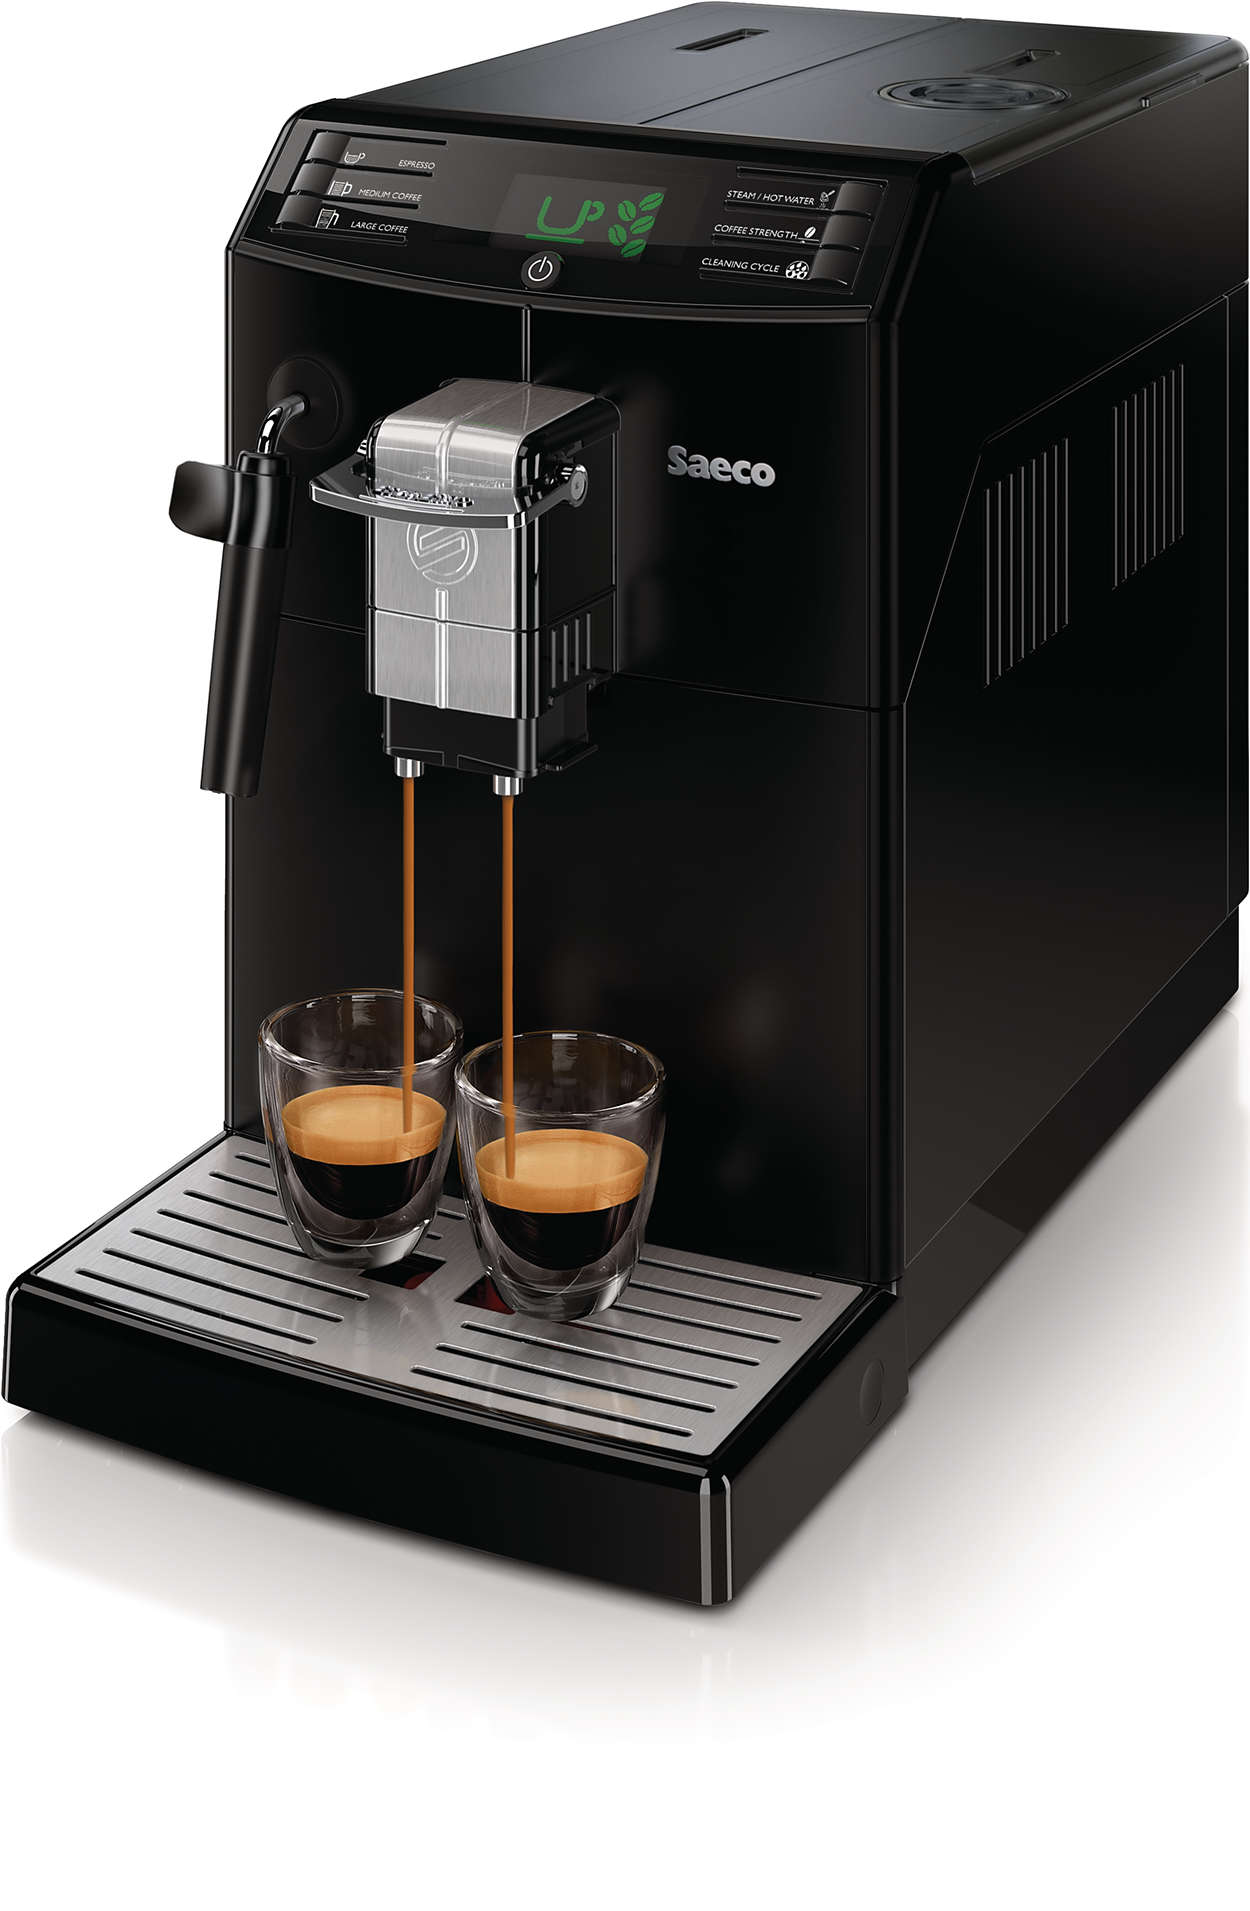 minuto super automatic espresso machine hd8775 48 saeco. Black Bedroom Furniture Sets. Home Design Ideas